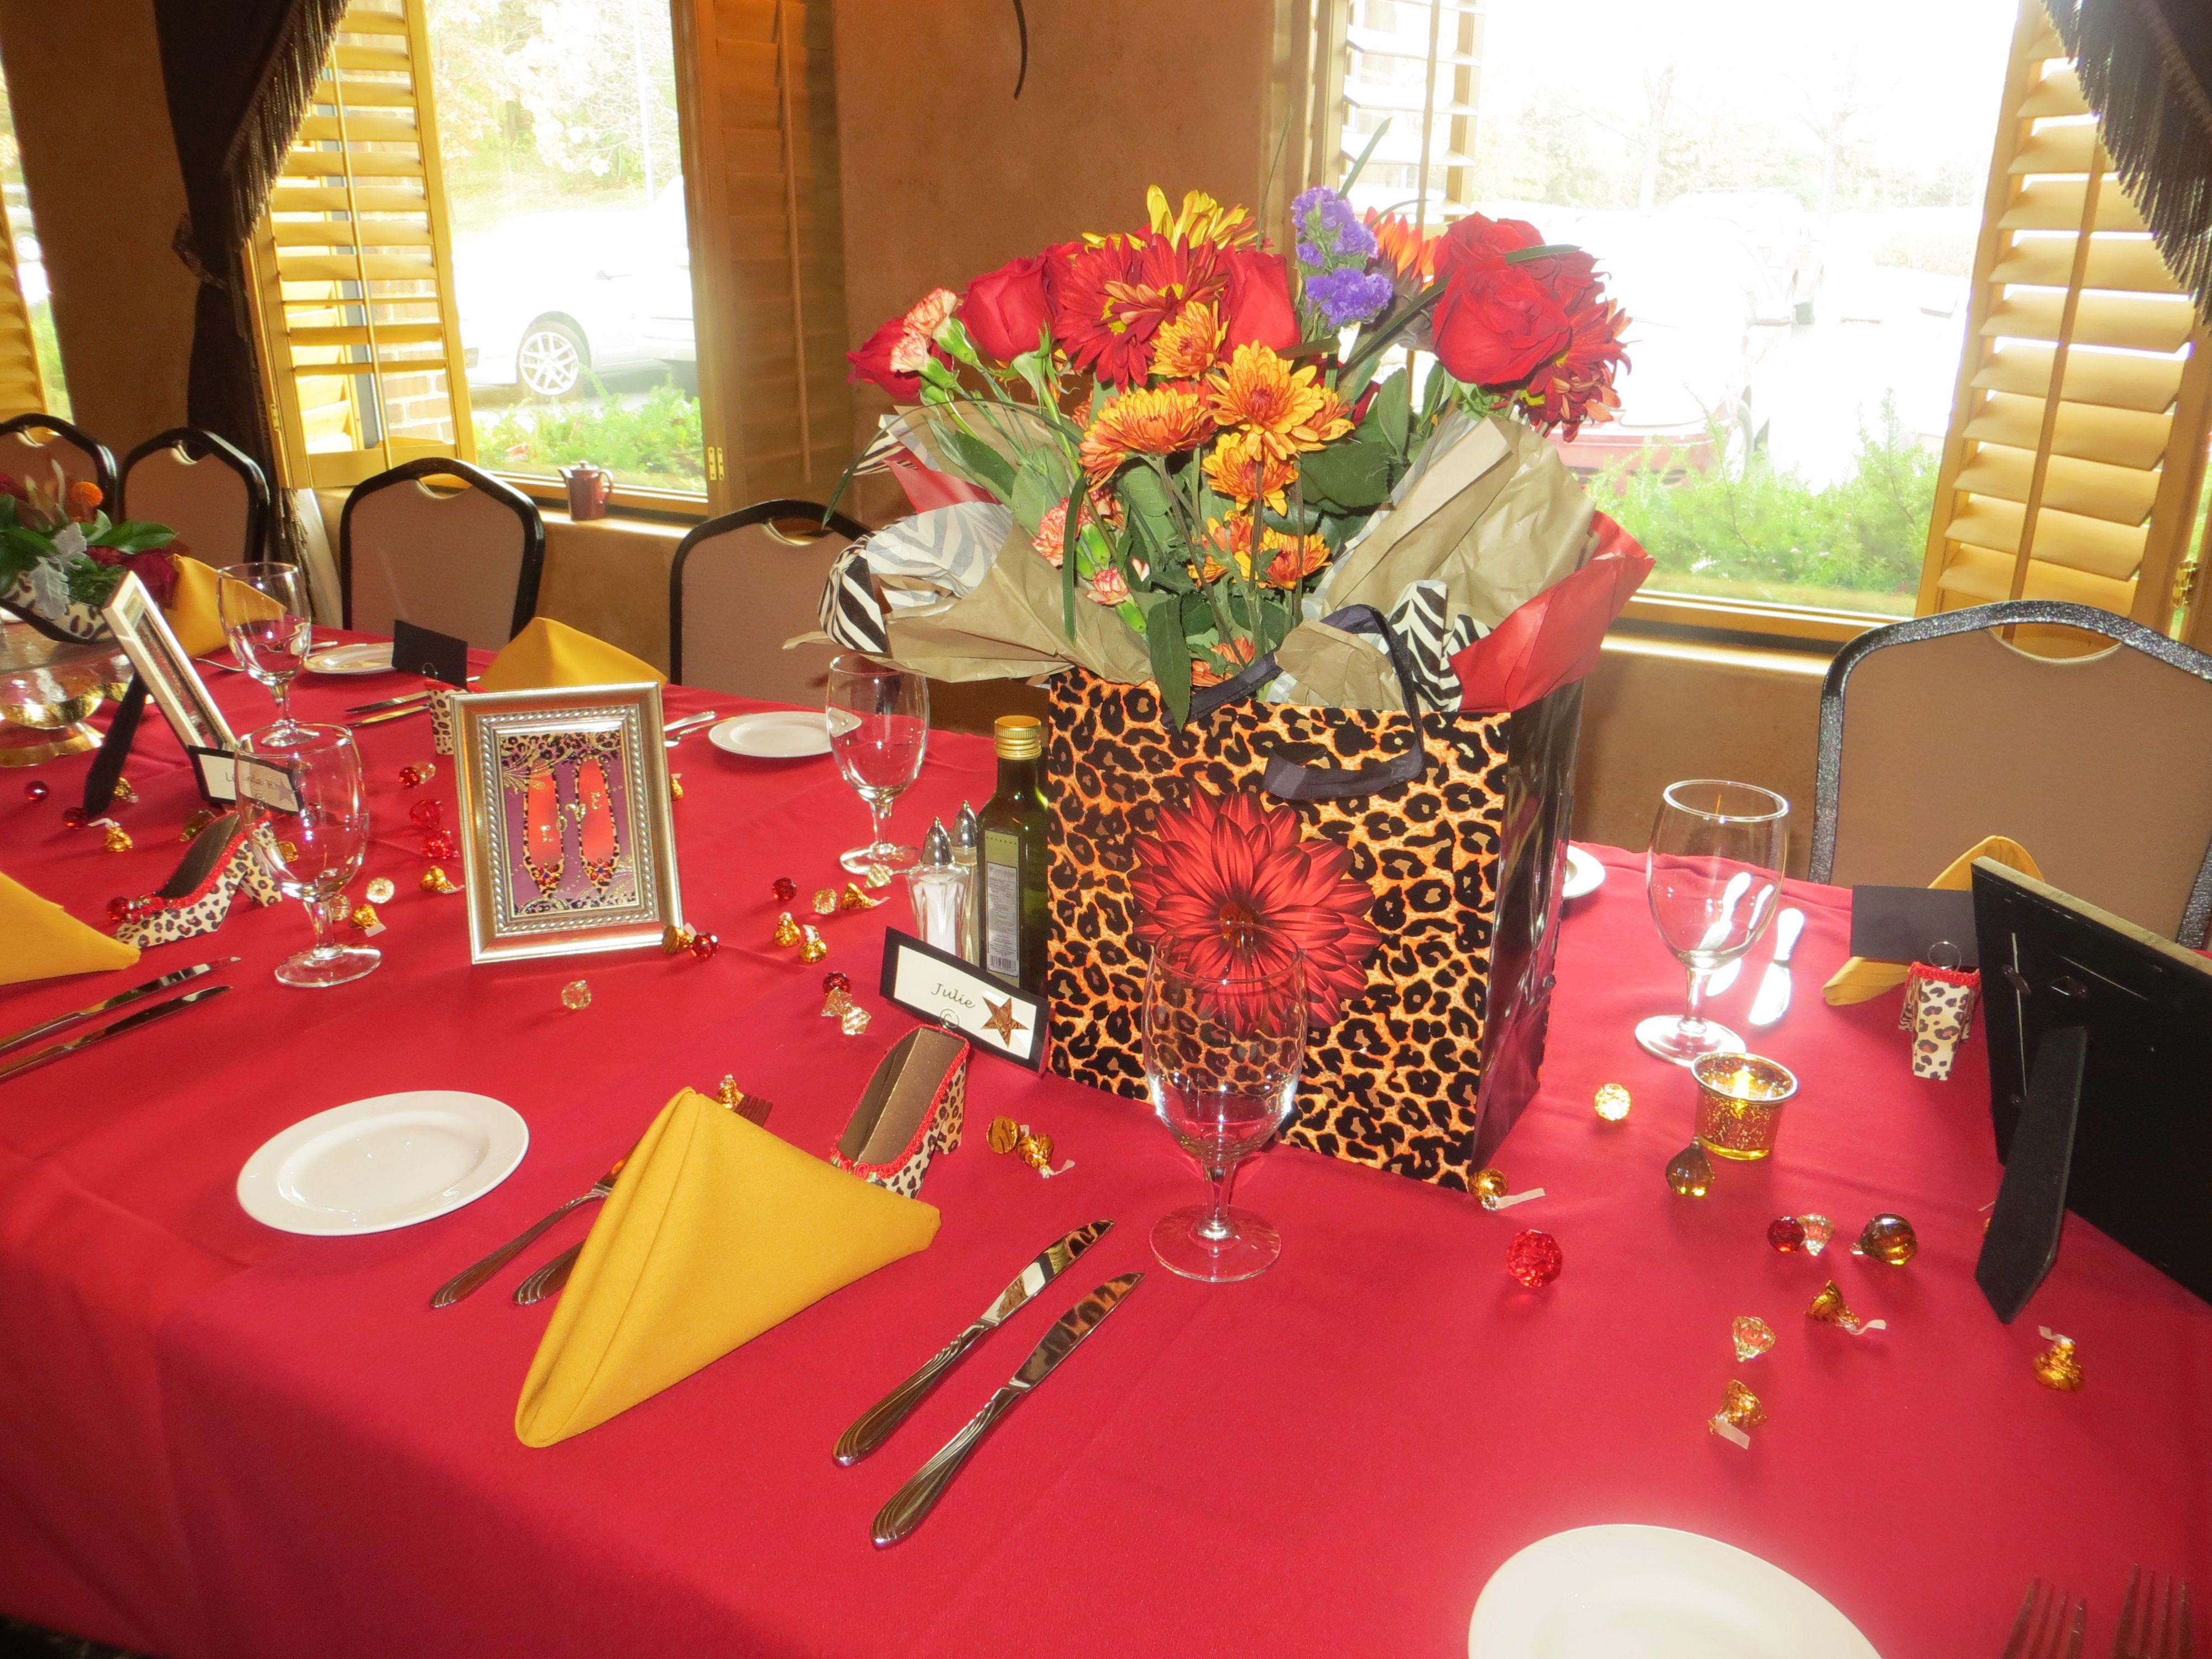 60th birthday party table decor pinterest for Decoration 60th birthday party